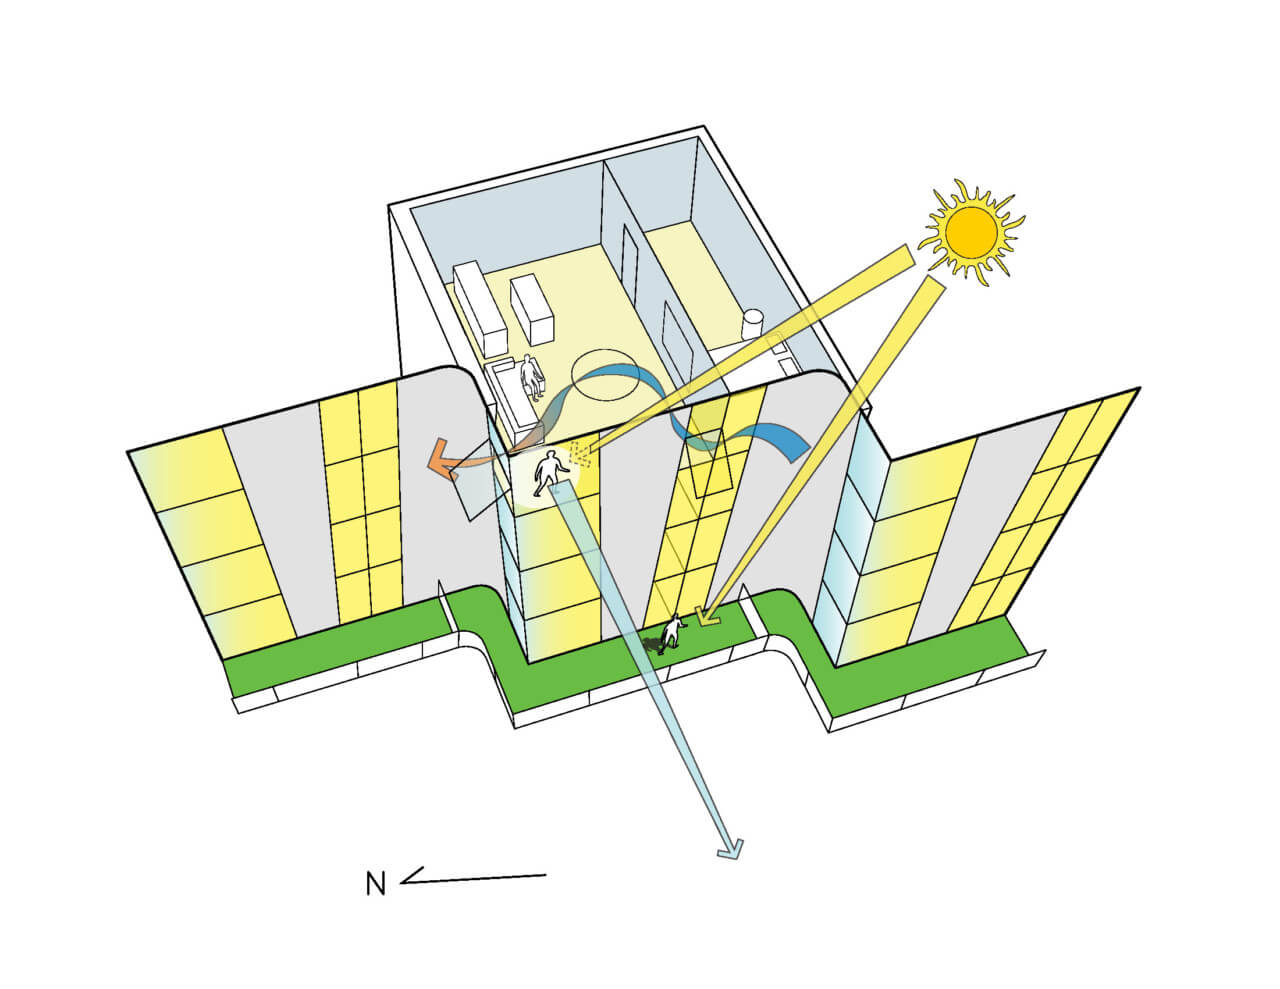 diagram of how sunlight interacts with the facade